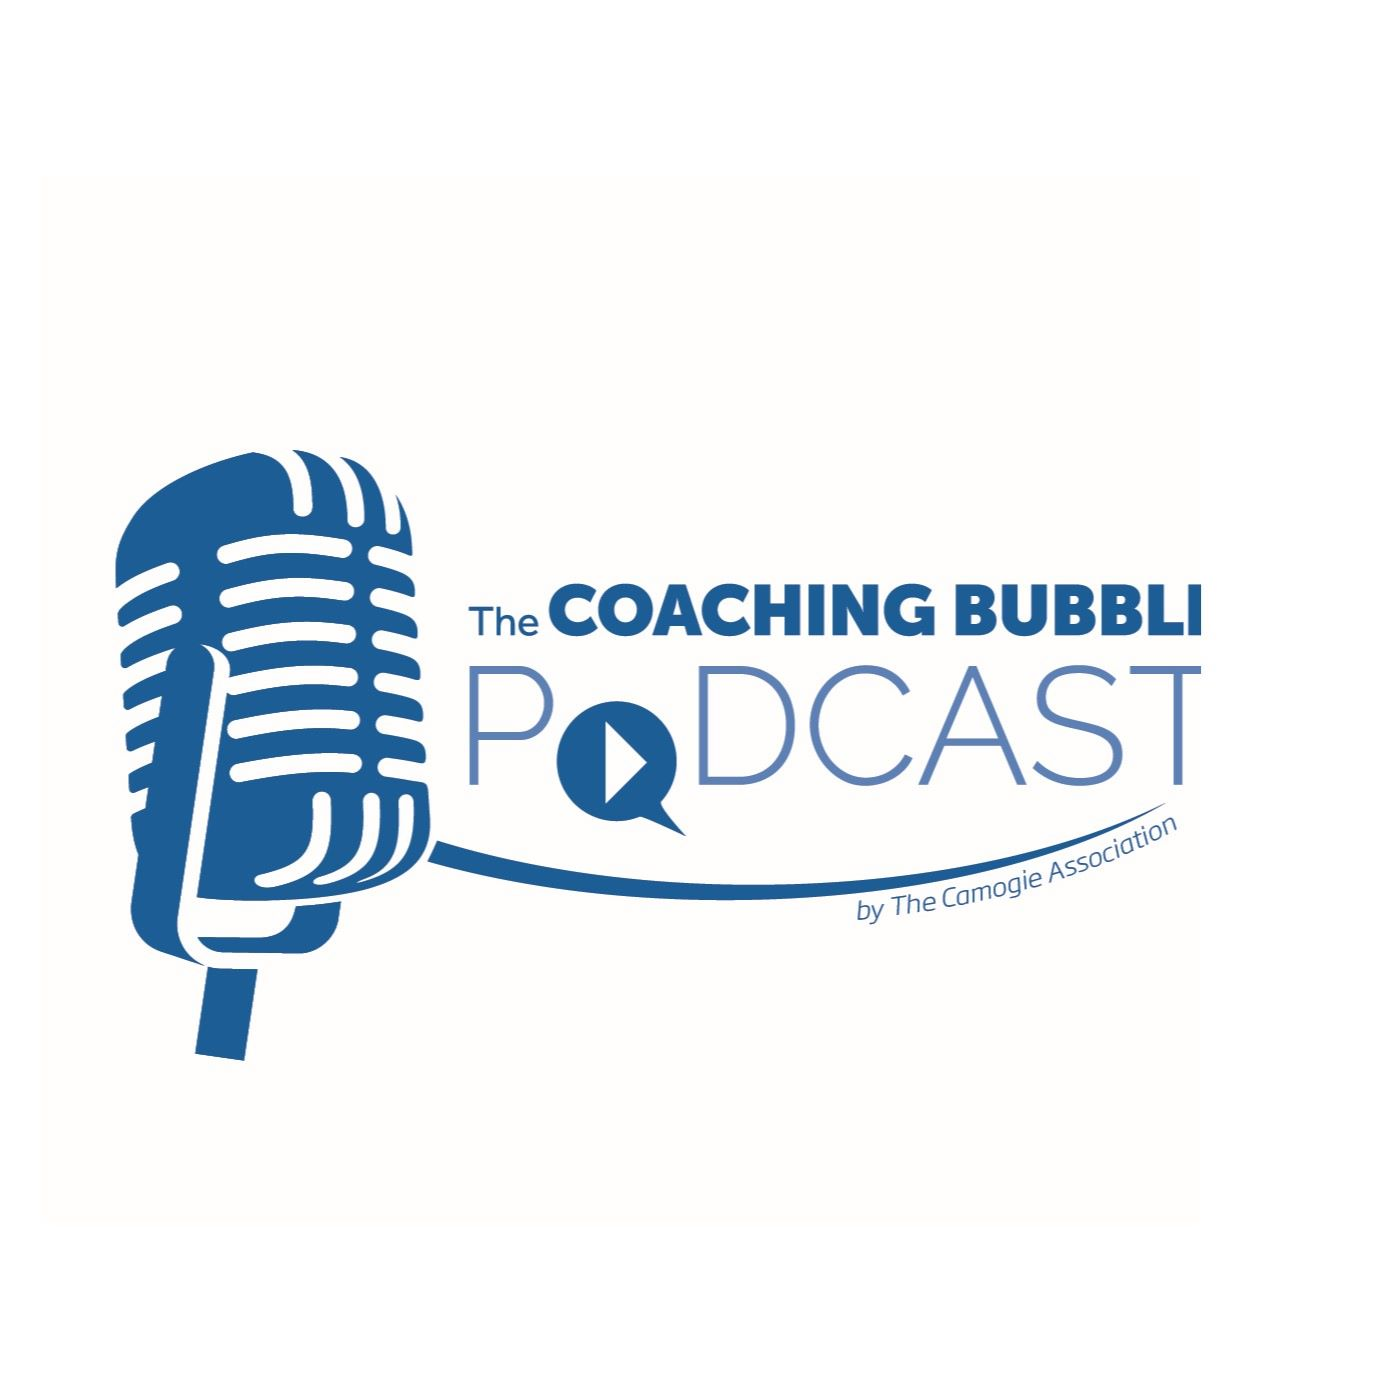 Coaching Bubble Podcast